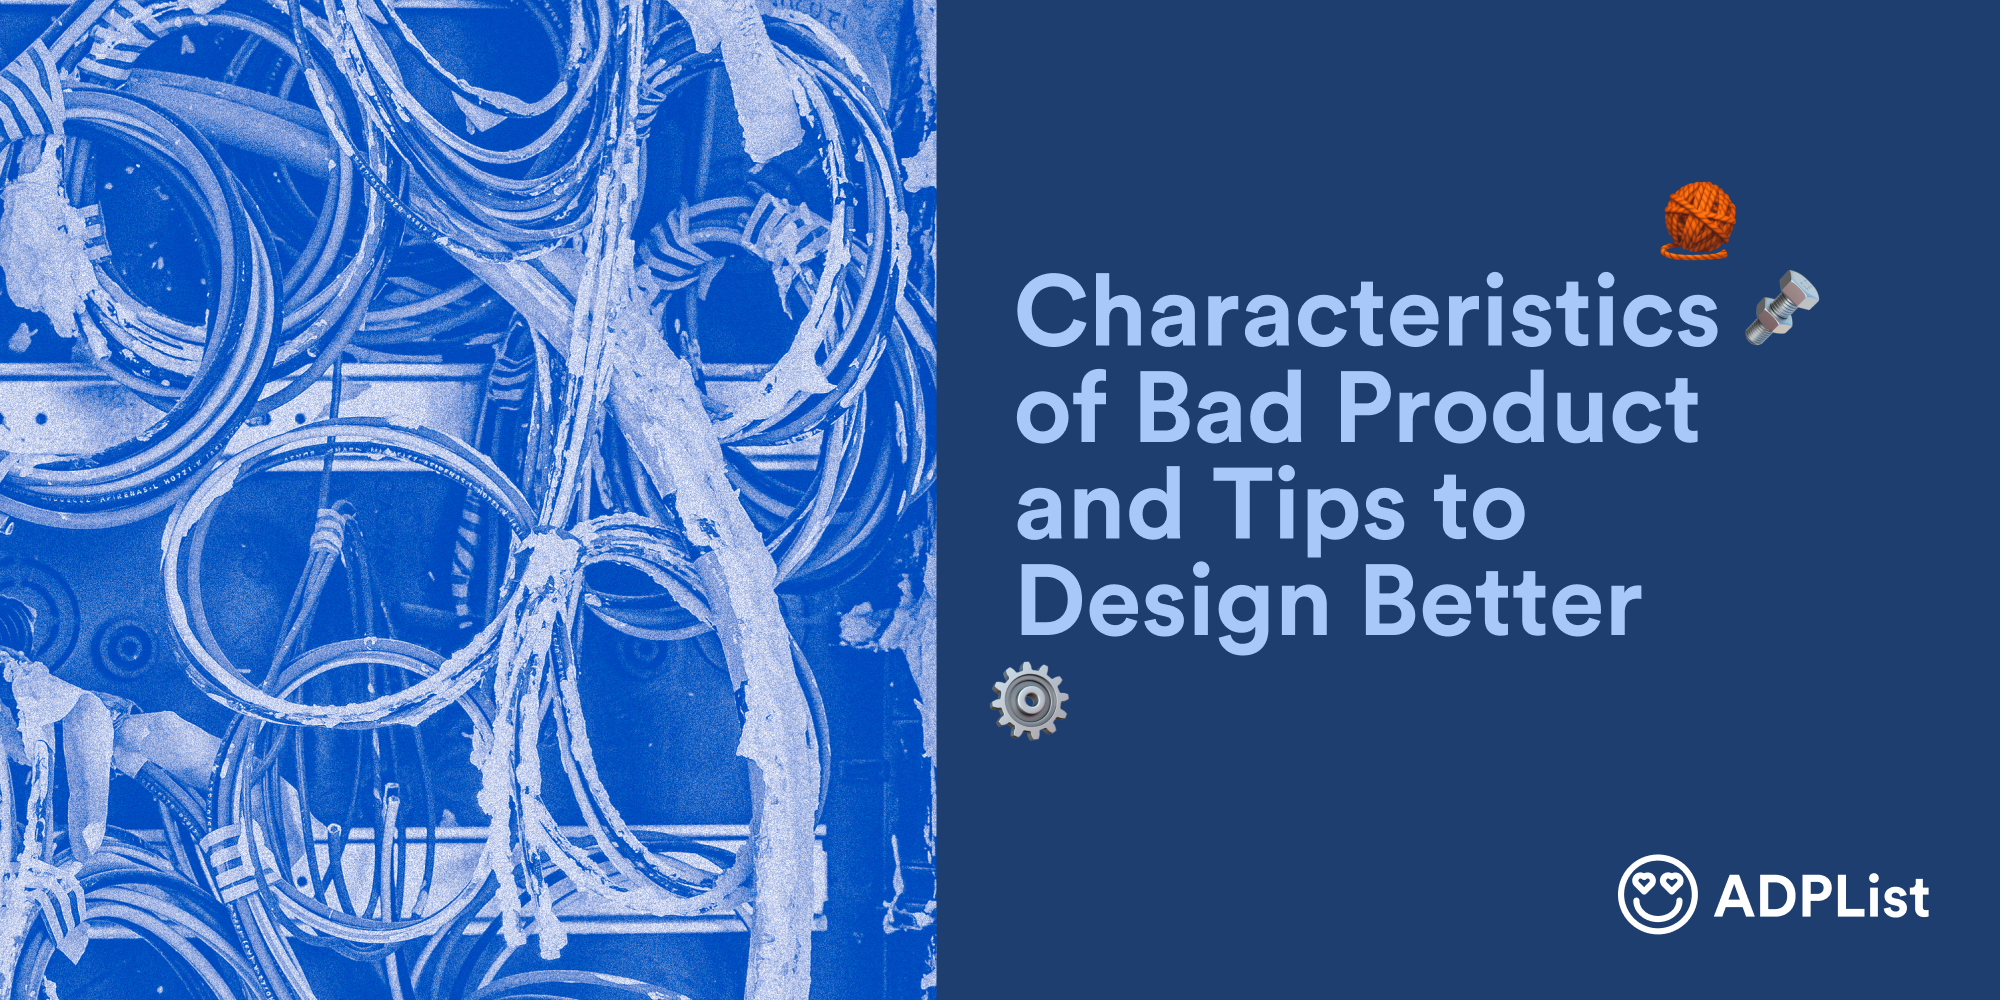 Characteristics of Bad Product and Tips to Design Better